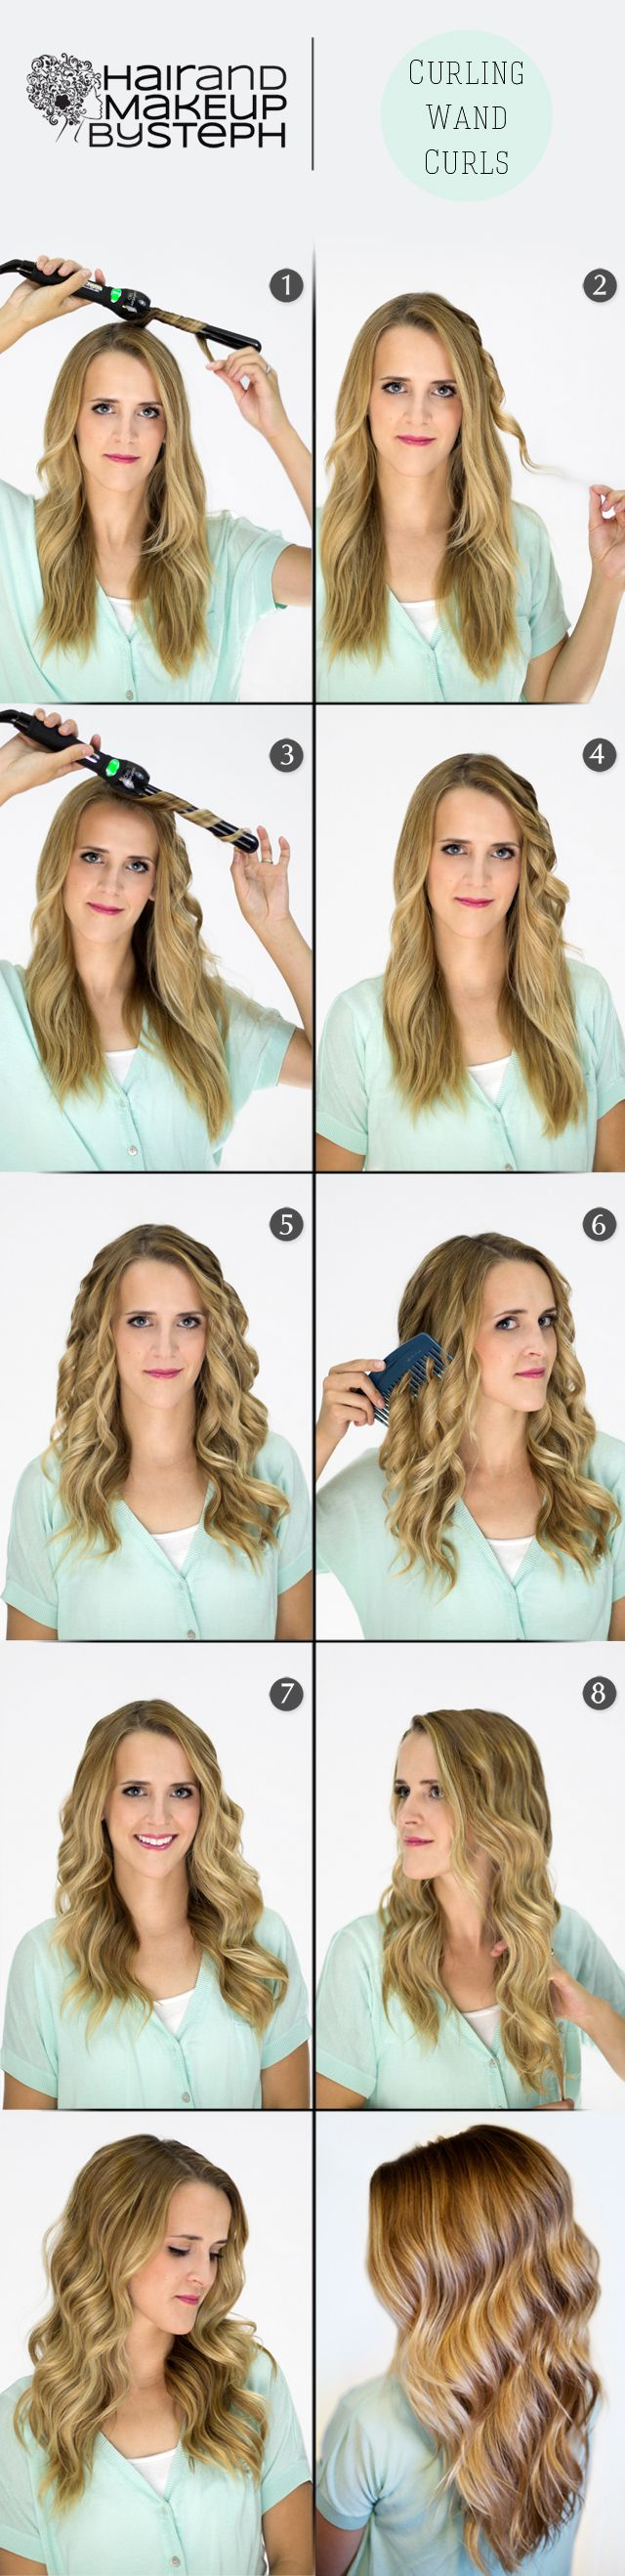 hair styles with curling wand 25 best ideas about curling wand curls on 5726